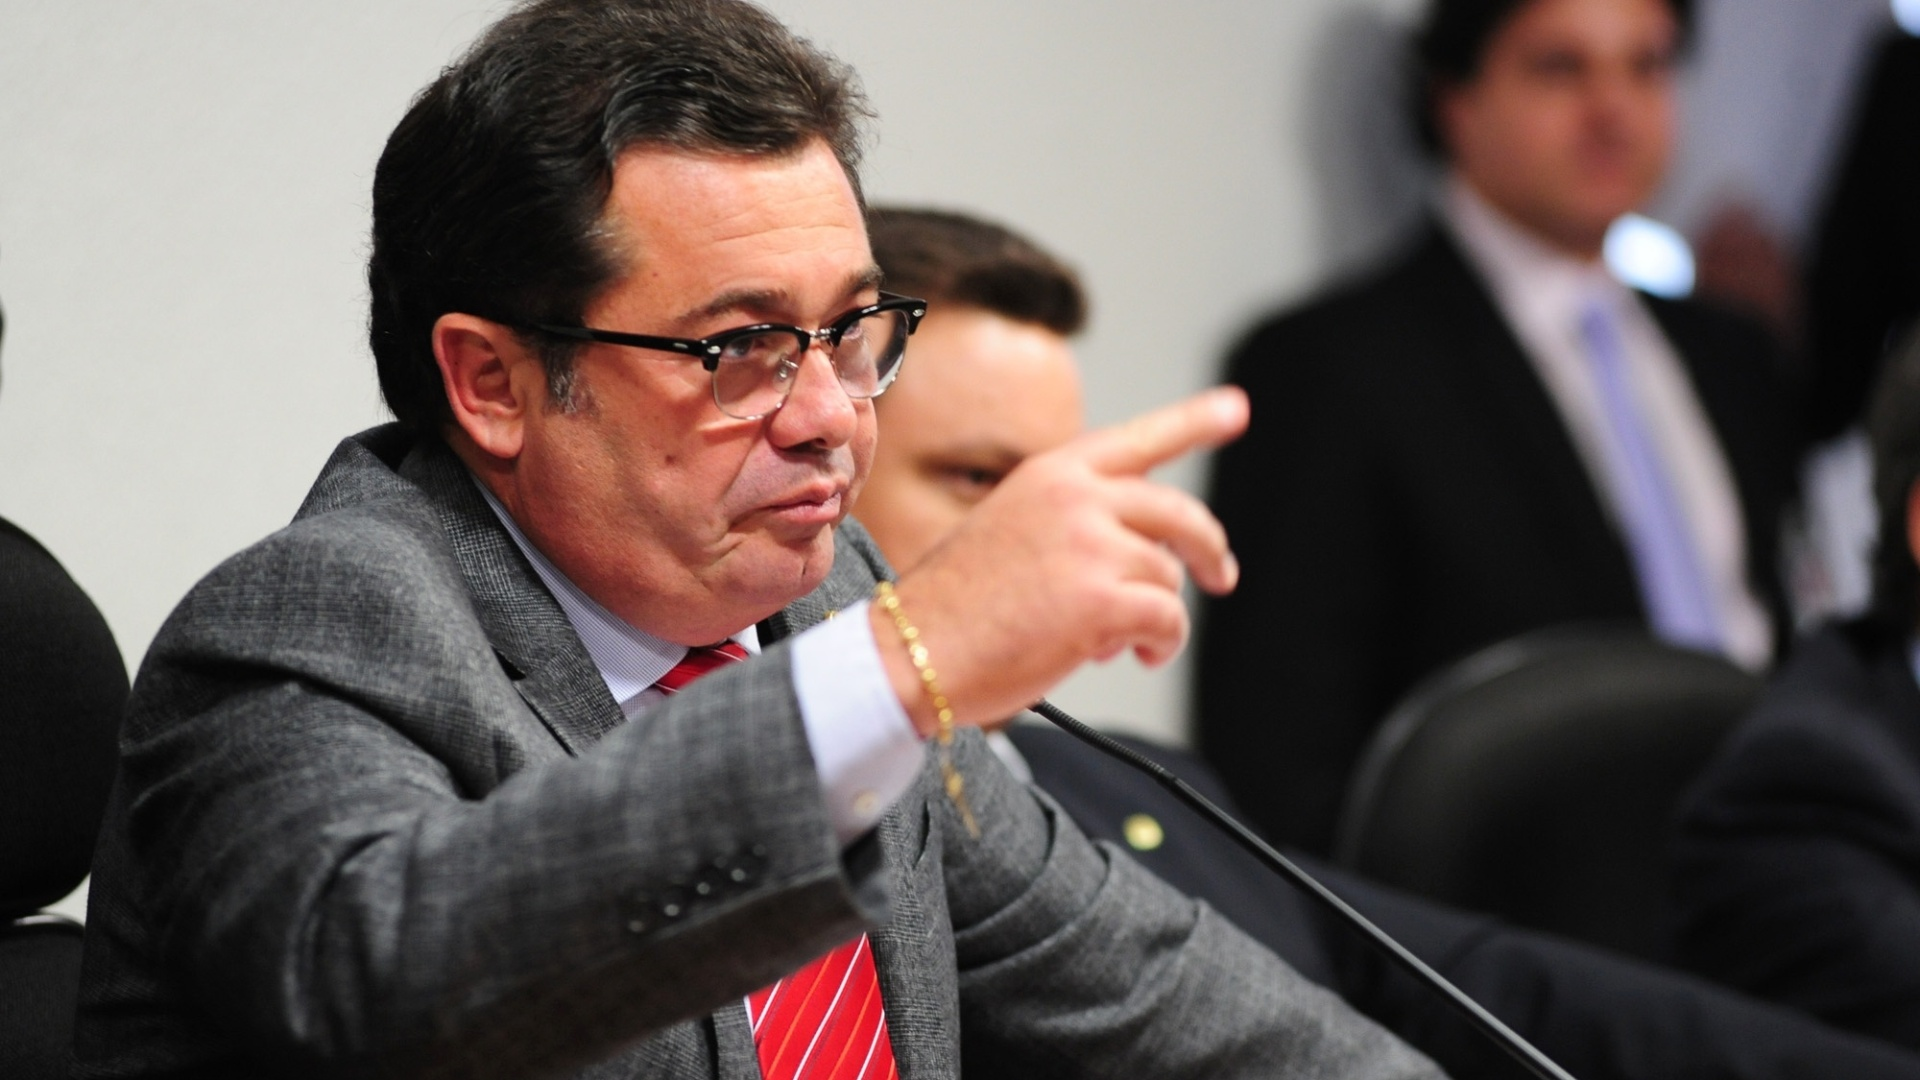 9.out.2012 - Presidente da CPI do Cachoeira, senador Vital do Rgo (PMDB-PB) interroga o deputado federal Carlos Alberto Leria (PSDB-GO) sobre seu suposto envolvimento com o esquema do contraventor 